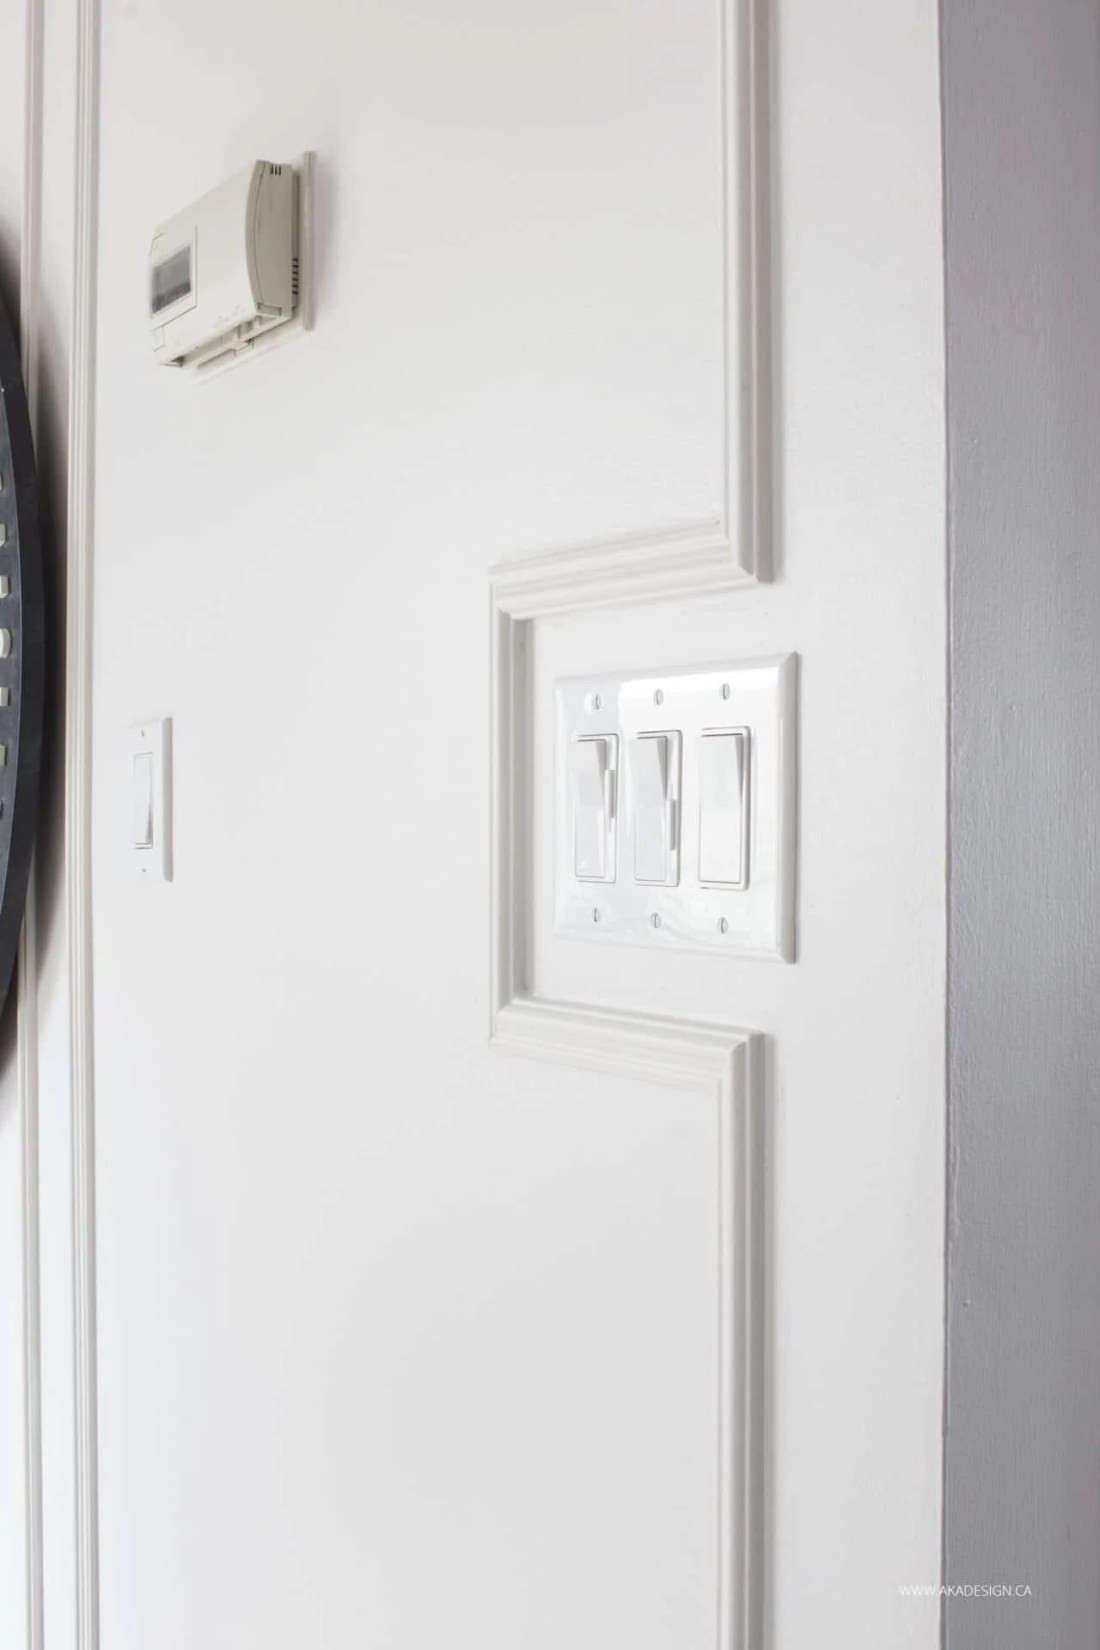 trim detail around light switch